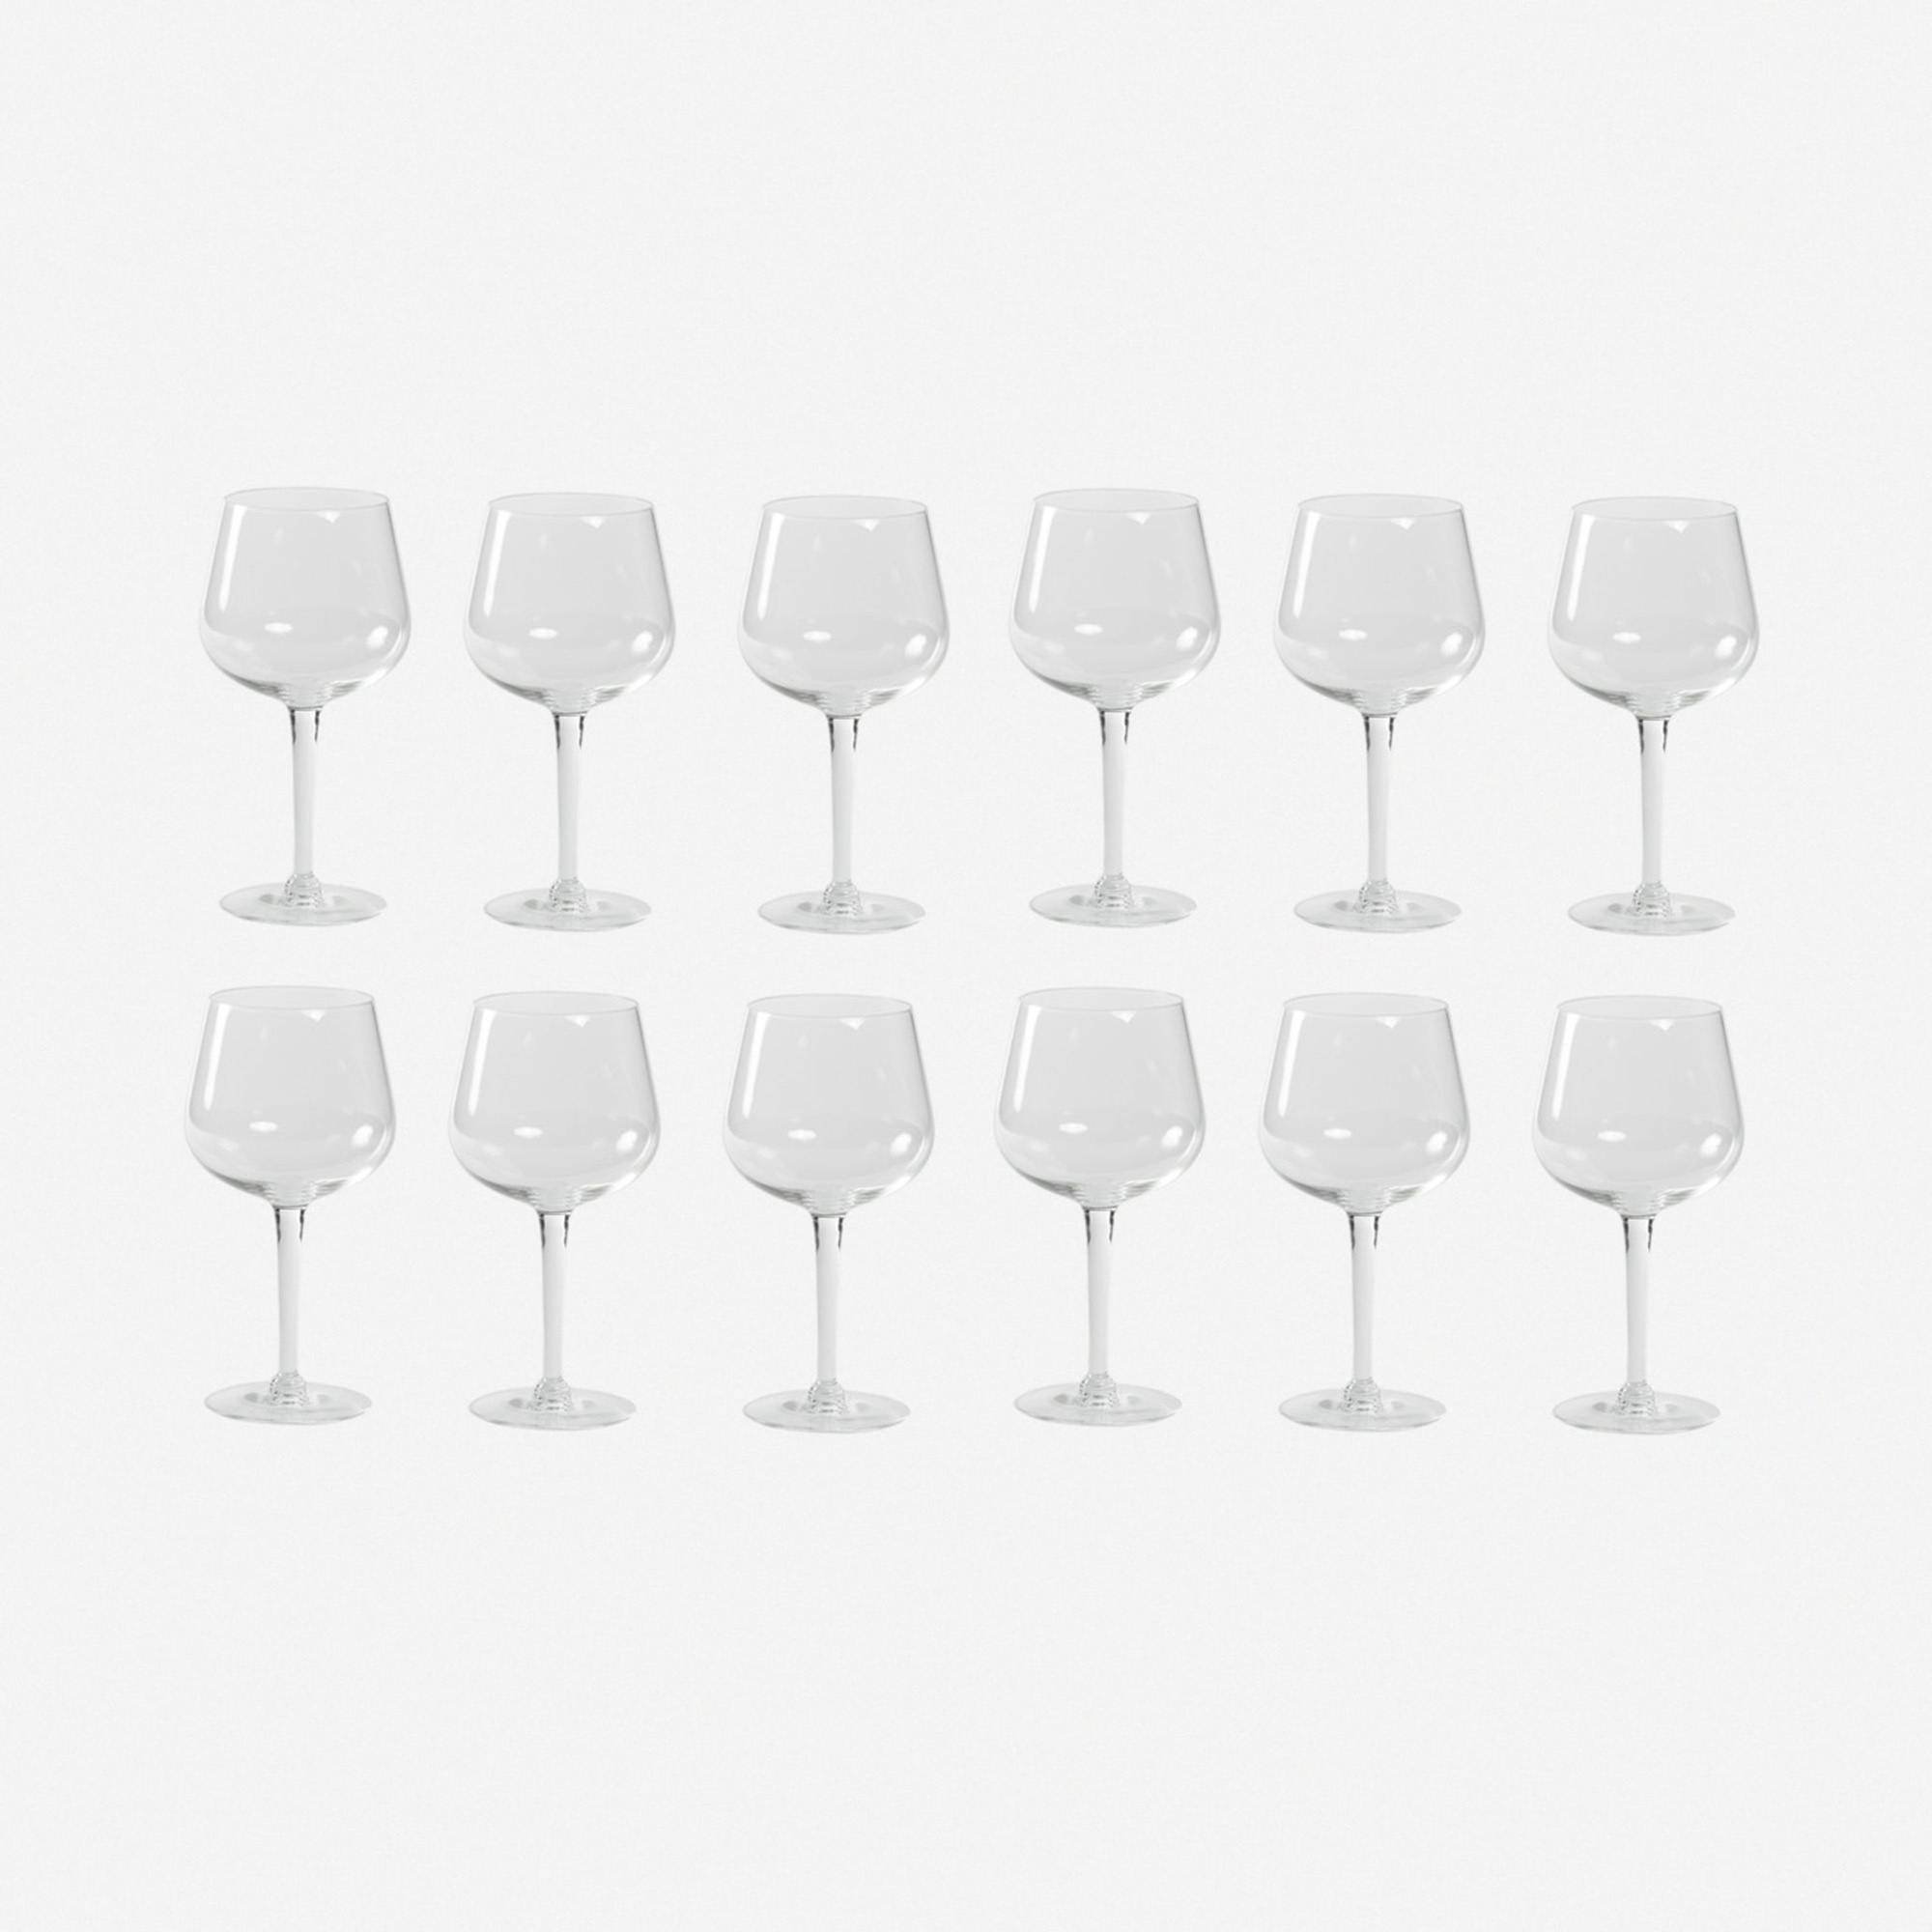 321: Garth and Ada Louise Huxtable / White Wine glasses from The Four Seasons, set of twelve (1 of 1)